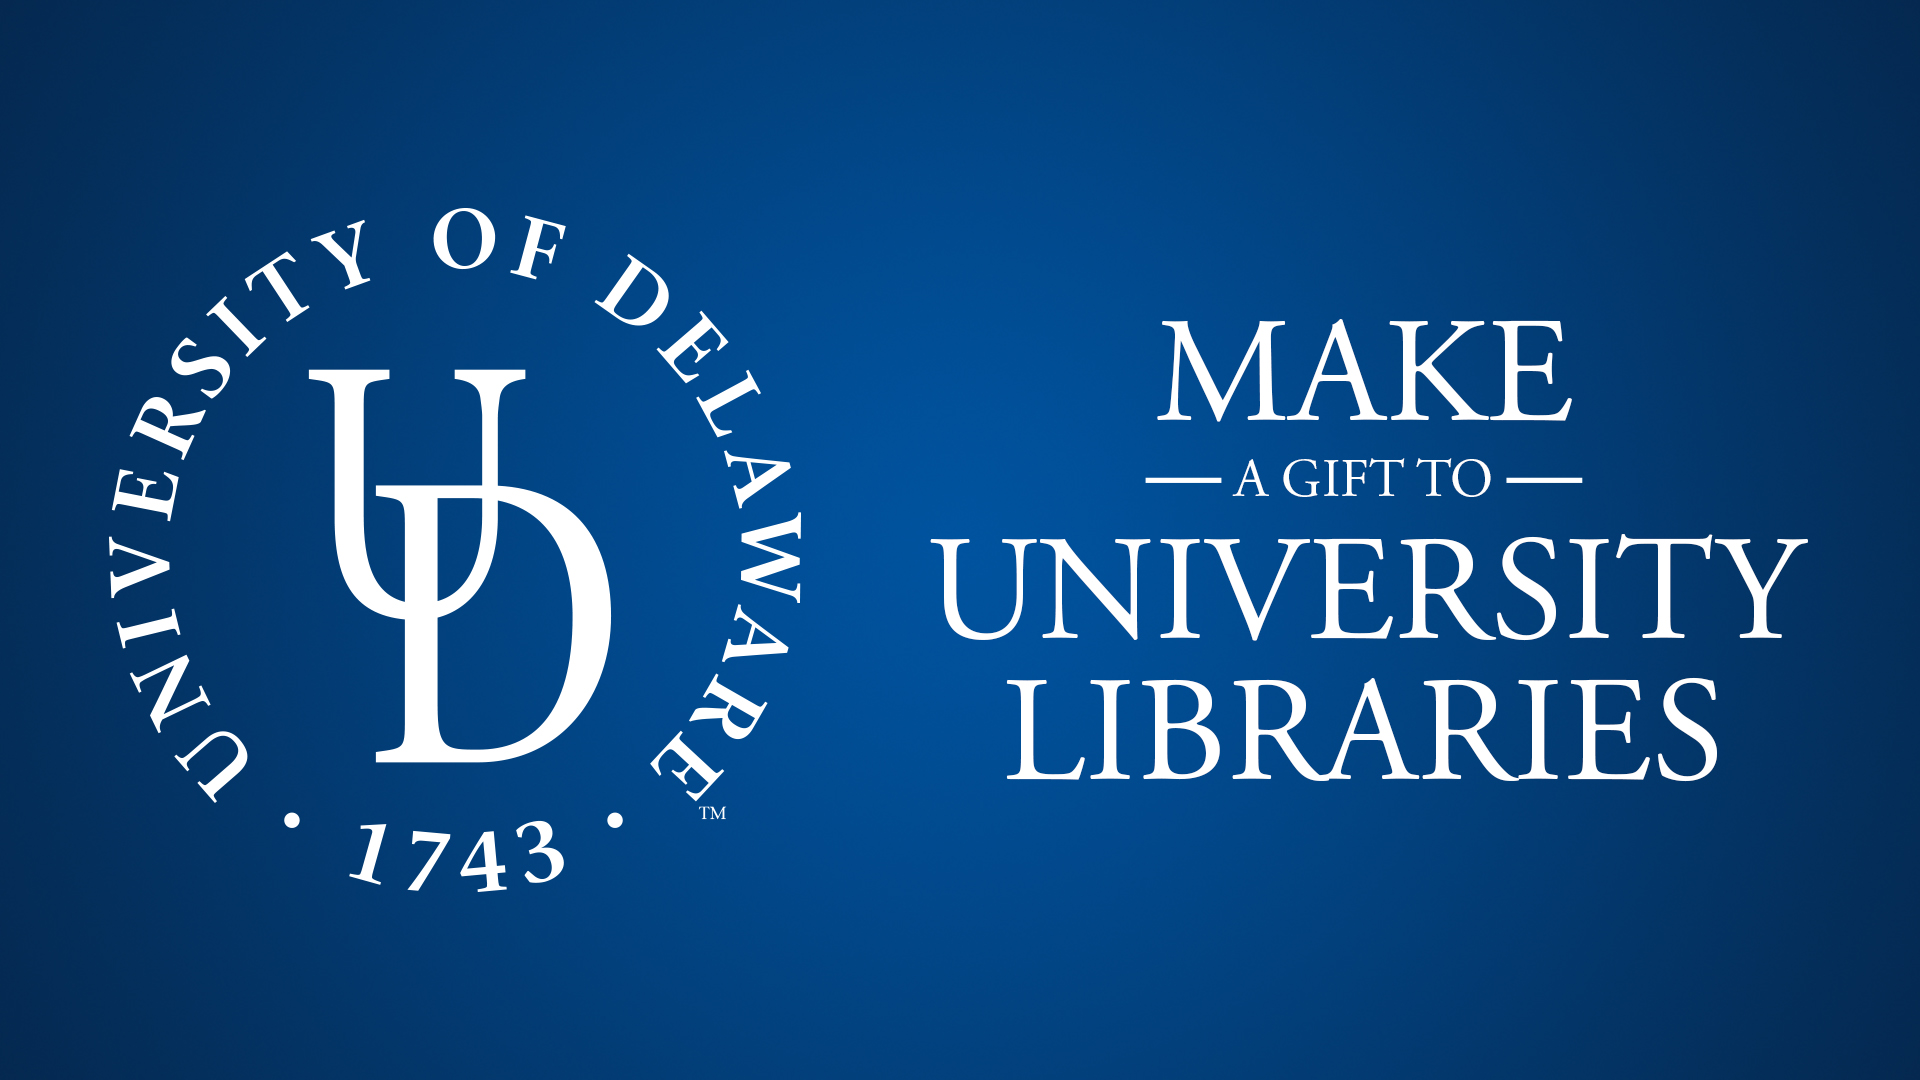 Make a Gift to University Libraries